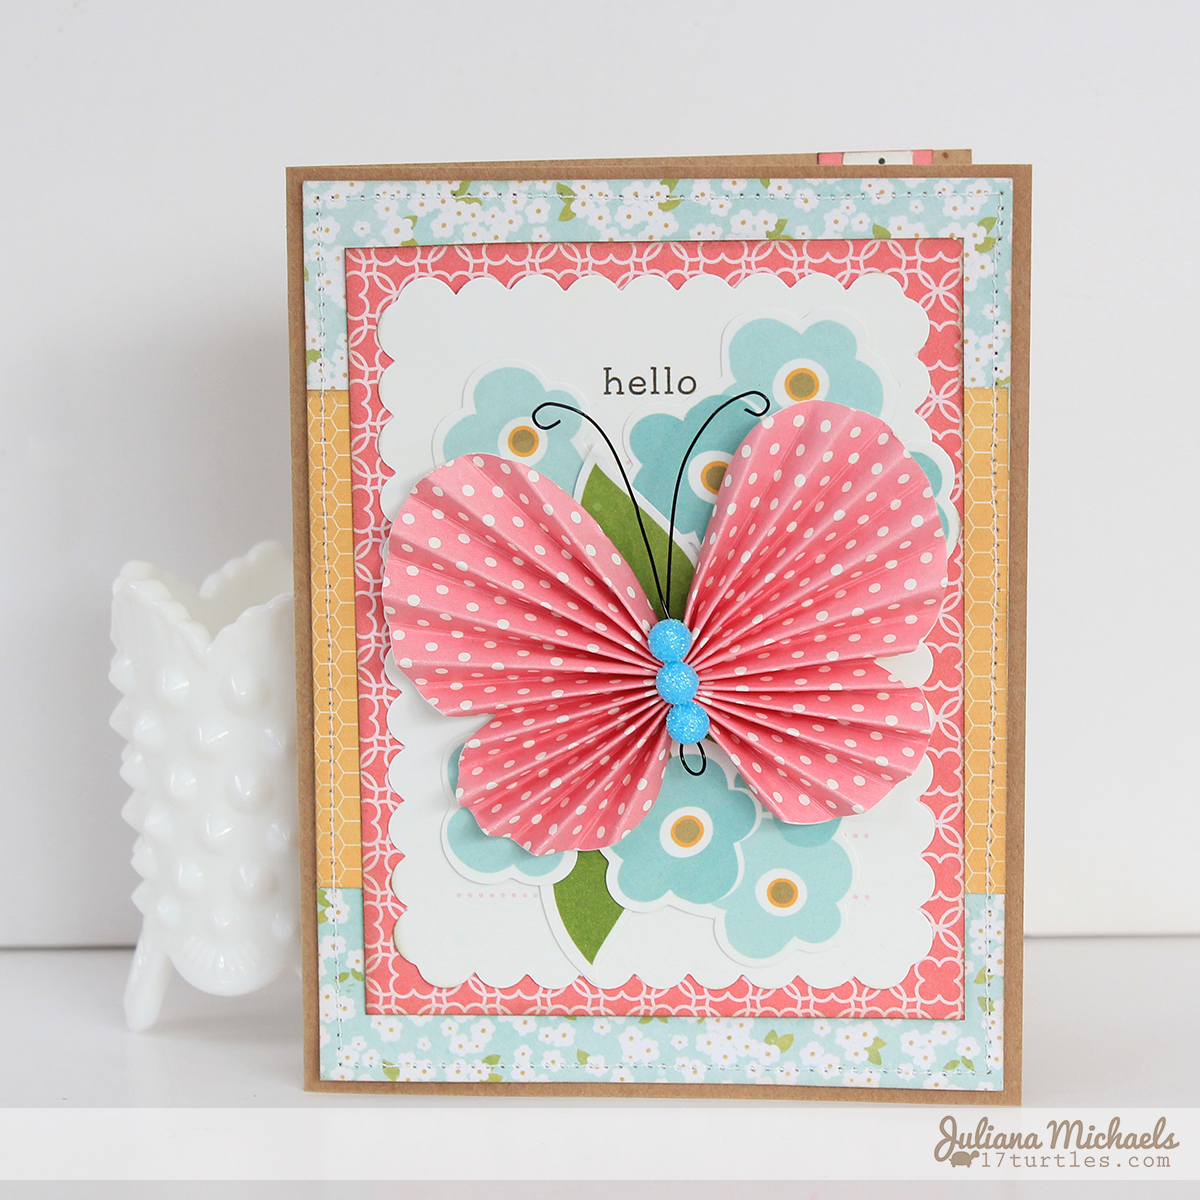 Hello Butterfly Card Pebbles Inc Garden Party Collection by Juliana Michaels